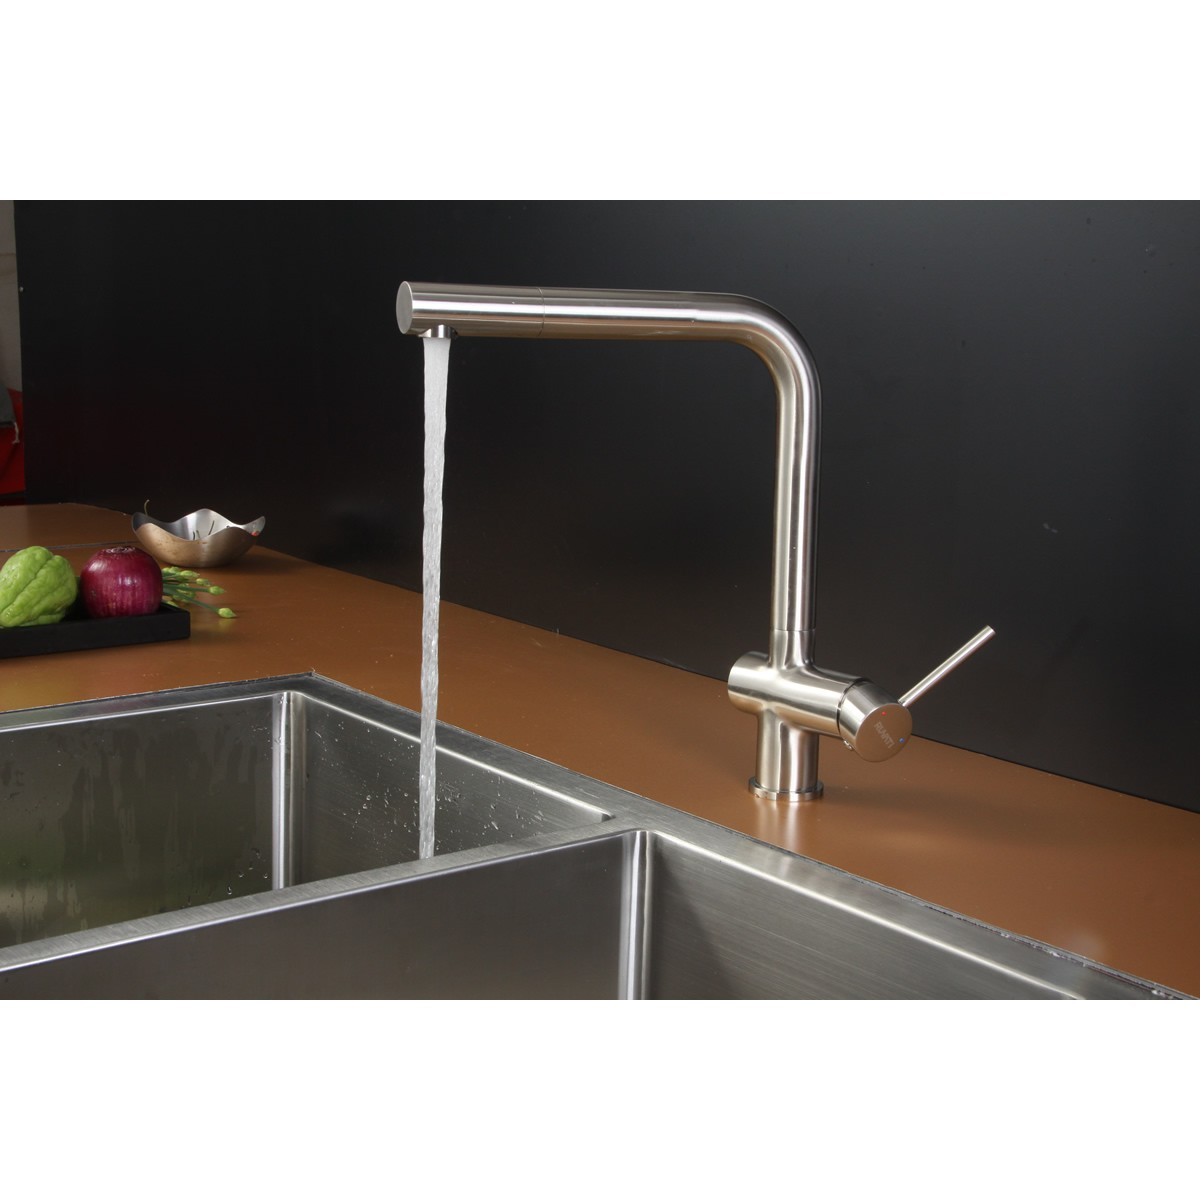 Buy Ruvati Stainless Steel Kitchen Sink and Stainless